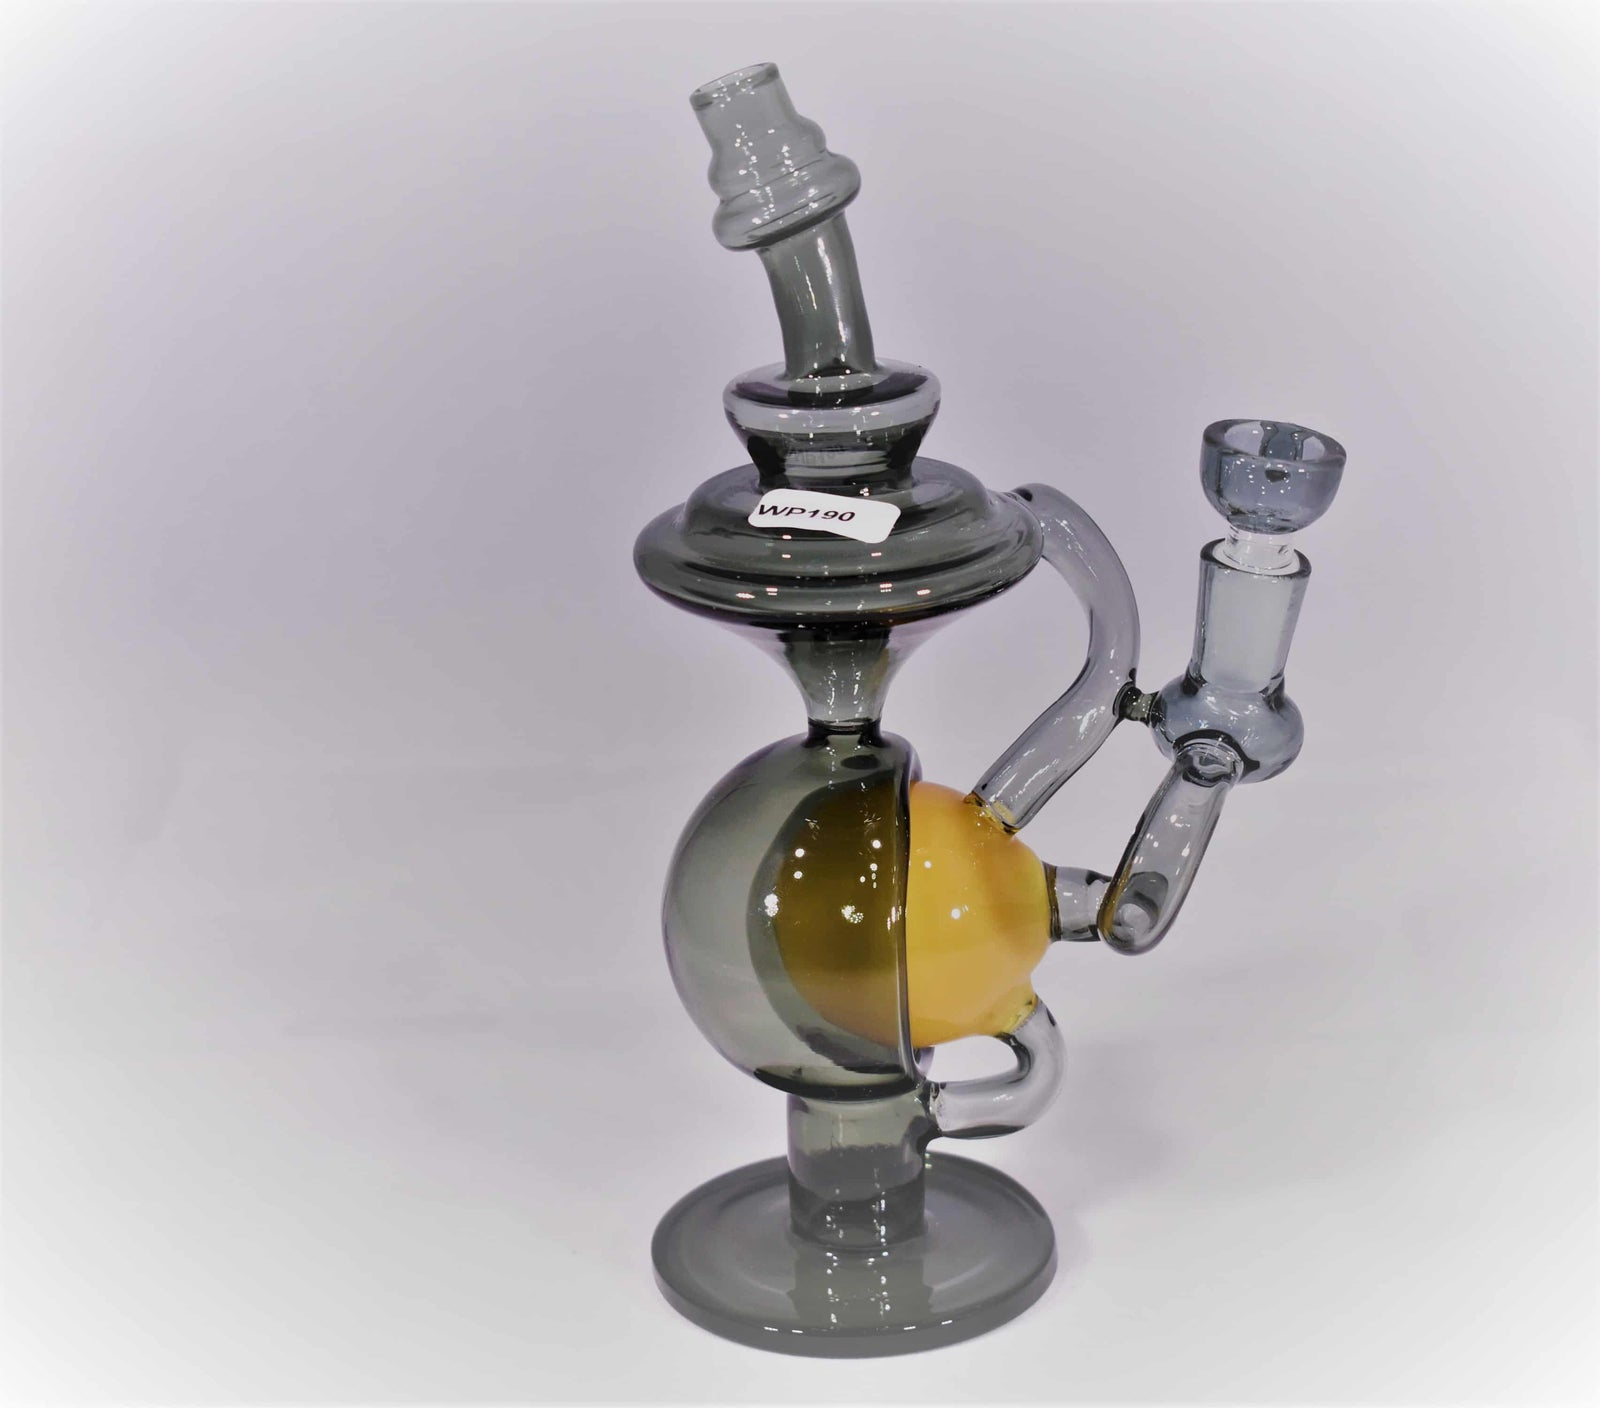 Wholesale Glass Vaporizer Pipes & Accessories | American